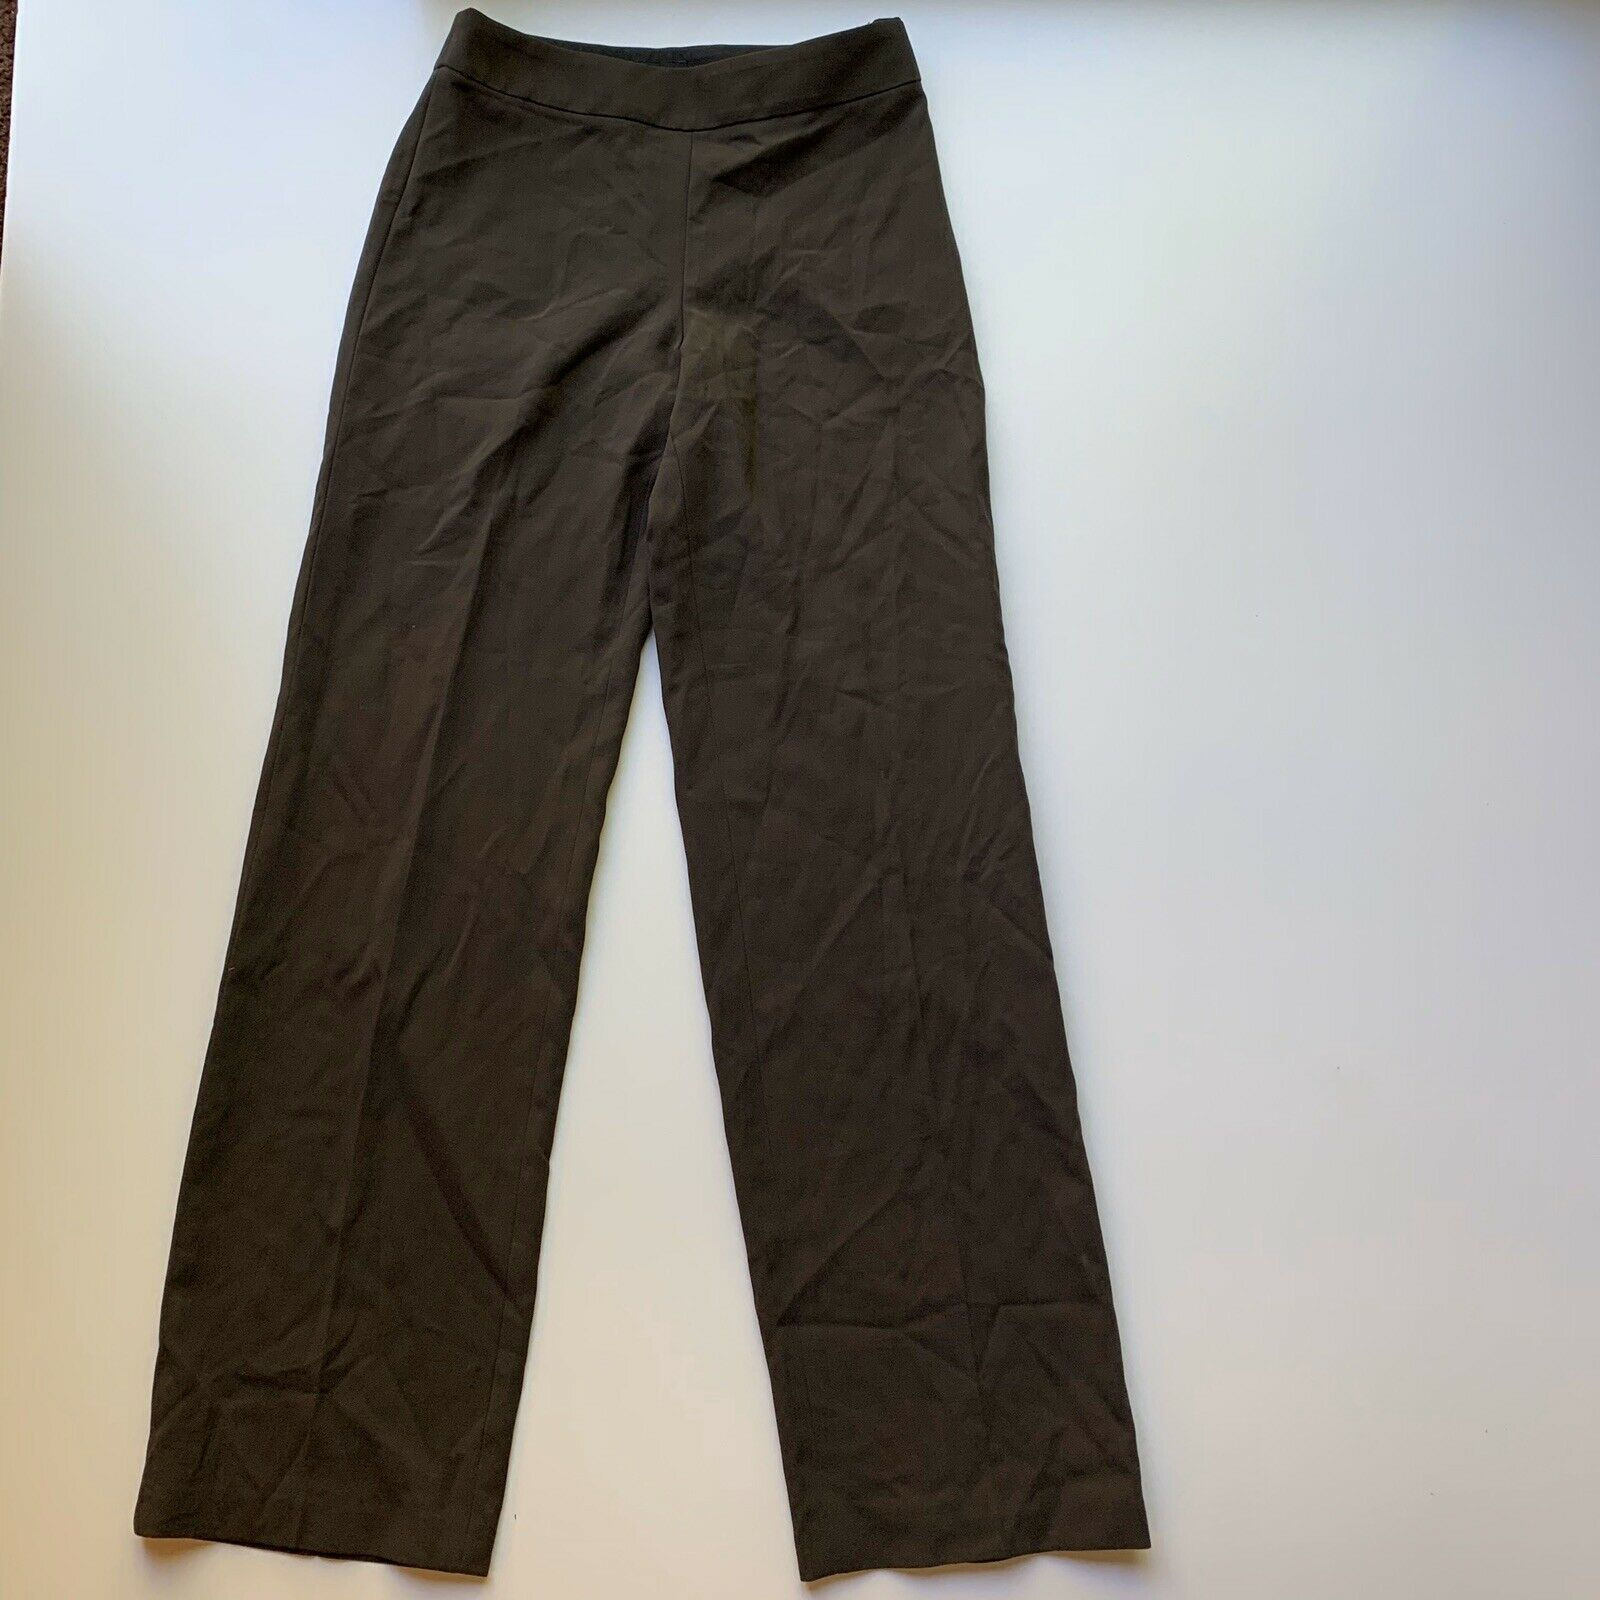 Giorgio Armani Women's Size 40 / Small Brown 100% Wool Dress Pant Trousers Italy image 3